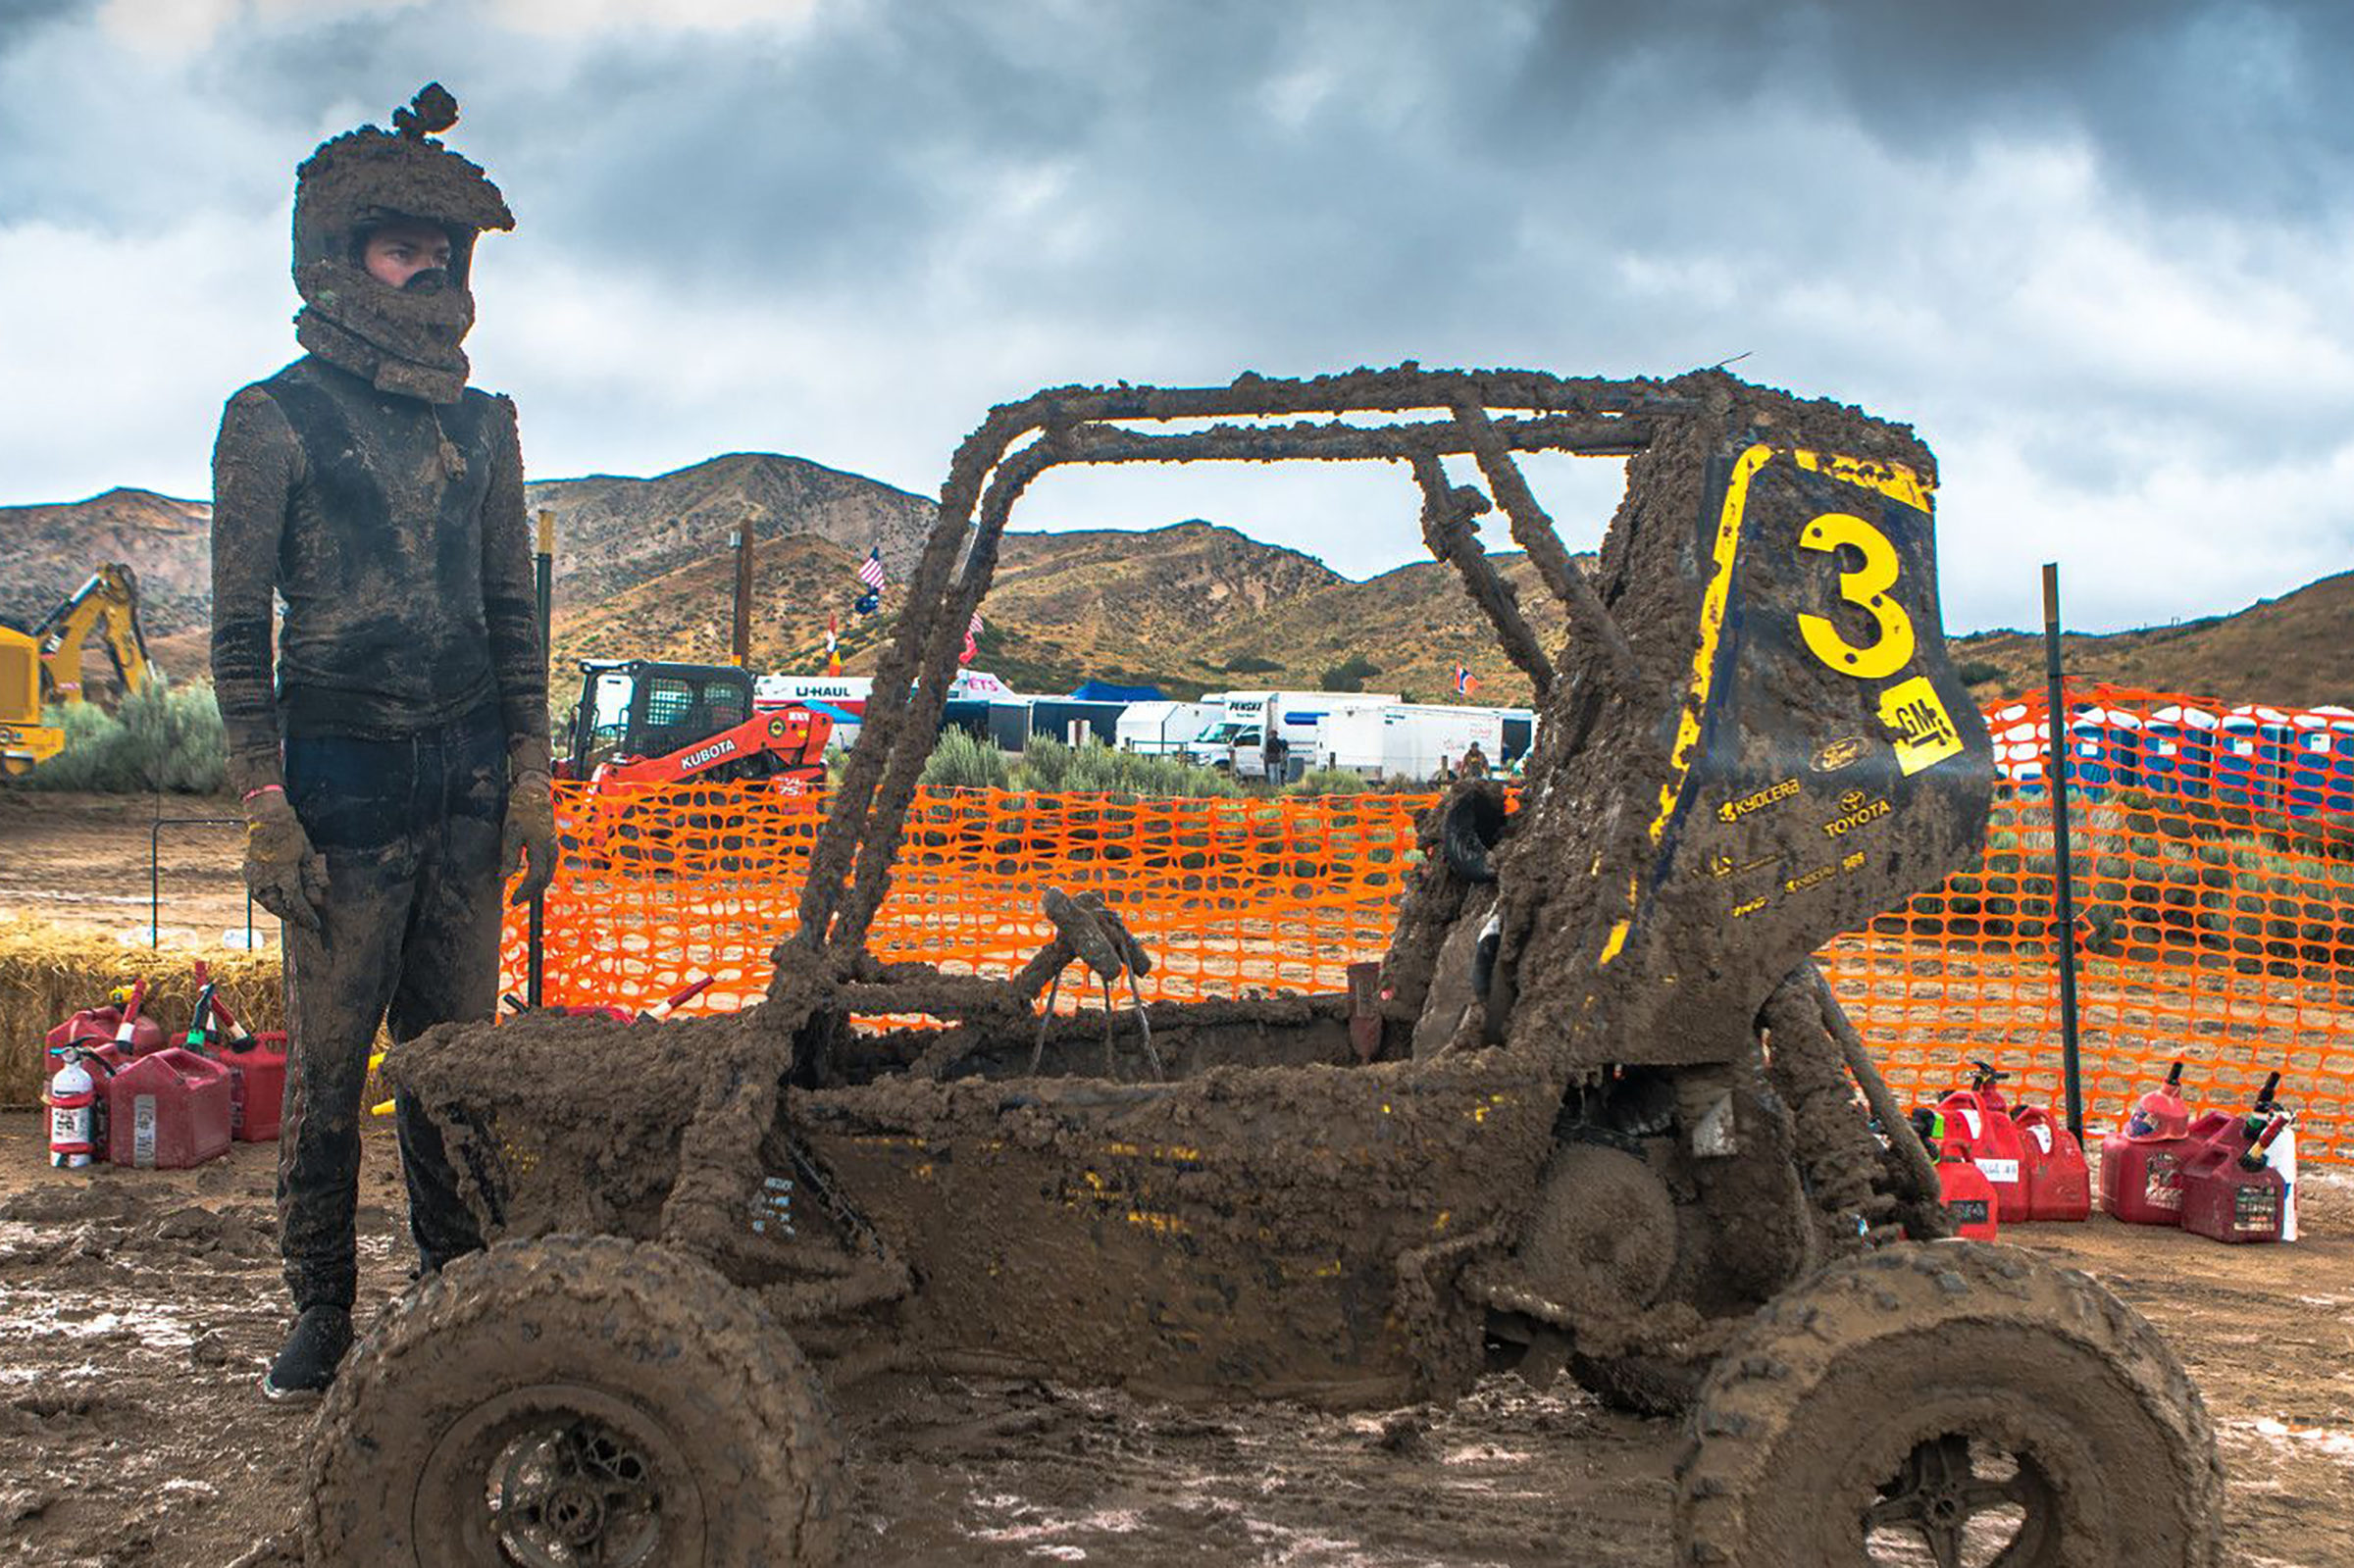 Driver with Baja Car covered in mud